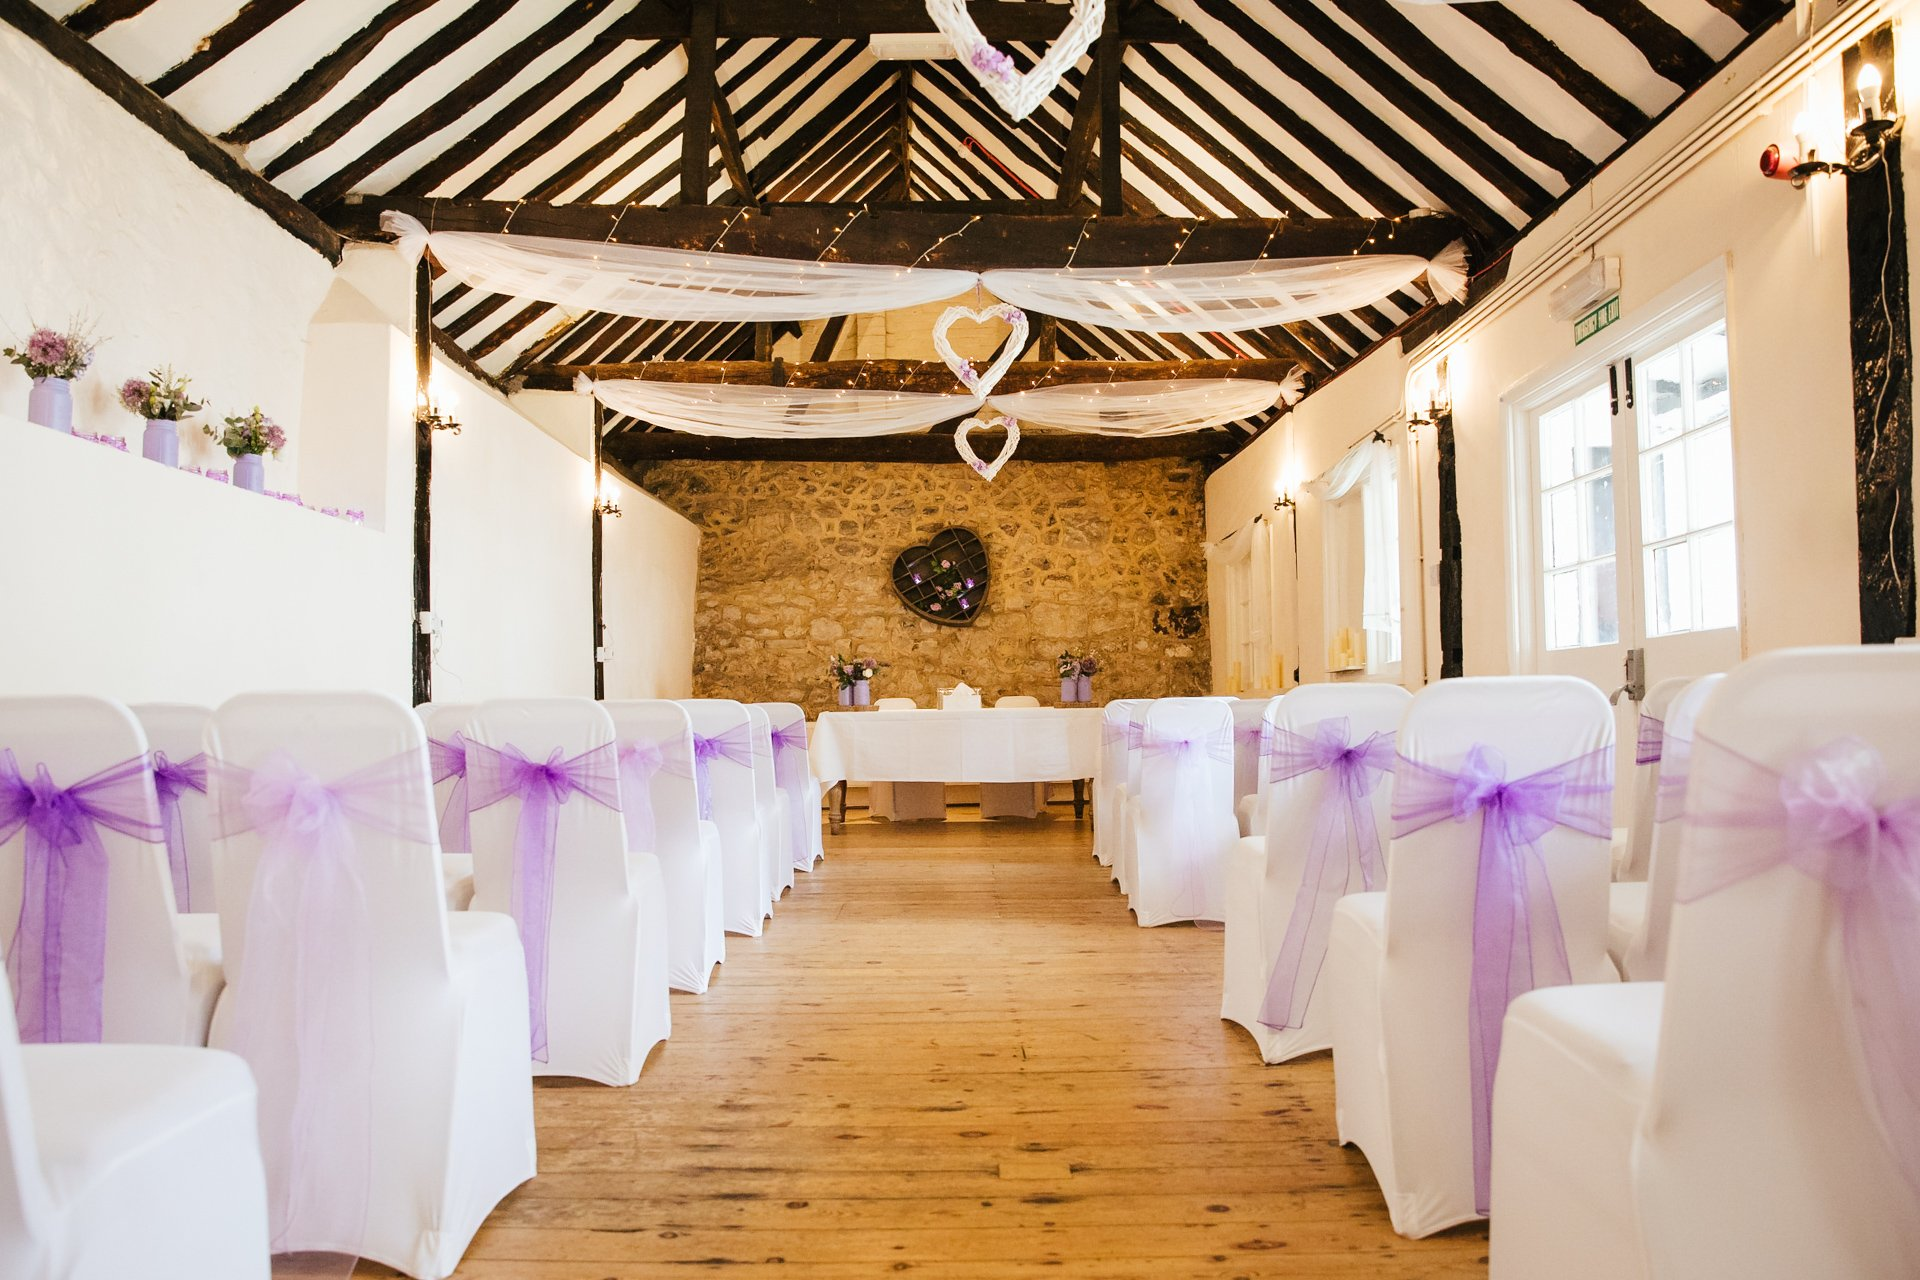 Stunning Wedding set up at The Buttery, ceremony room at The Bull Hotel, Wrotham, Kent